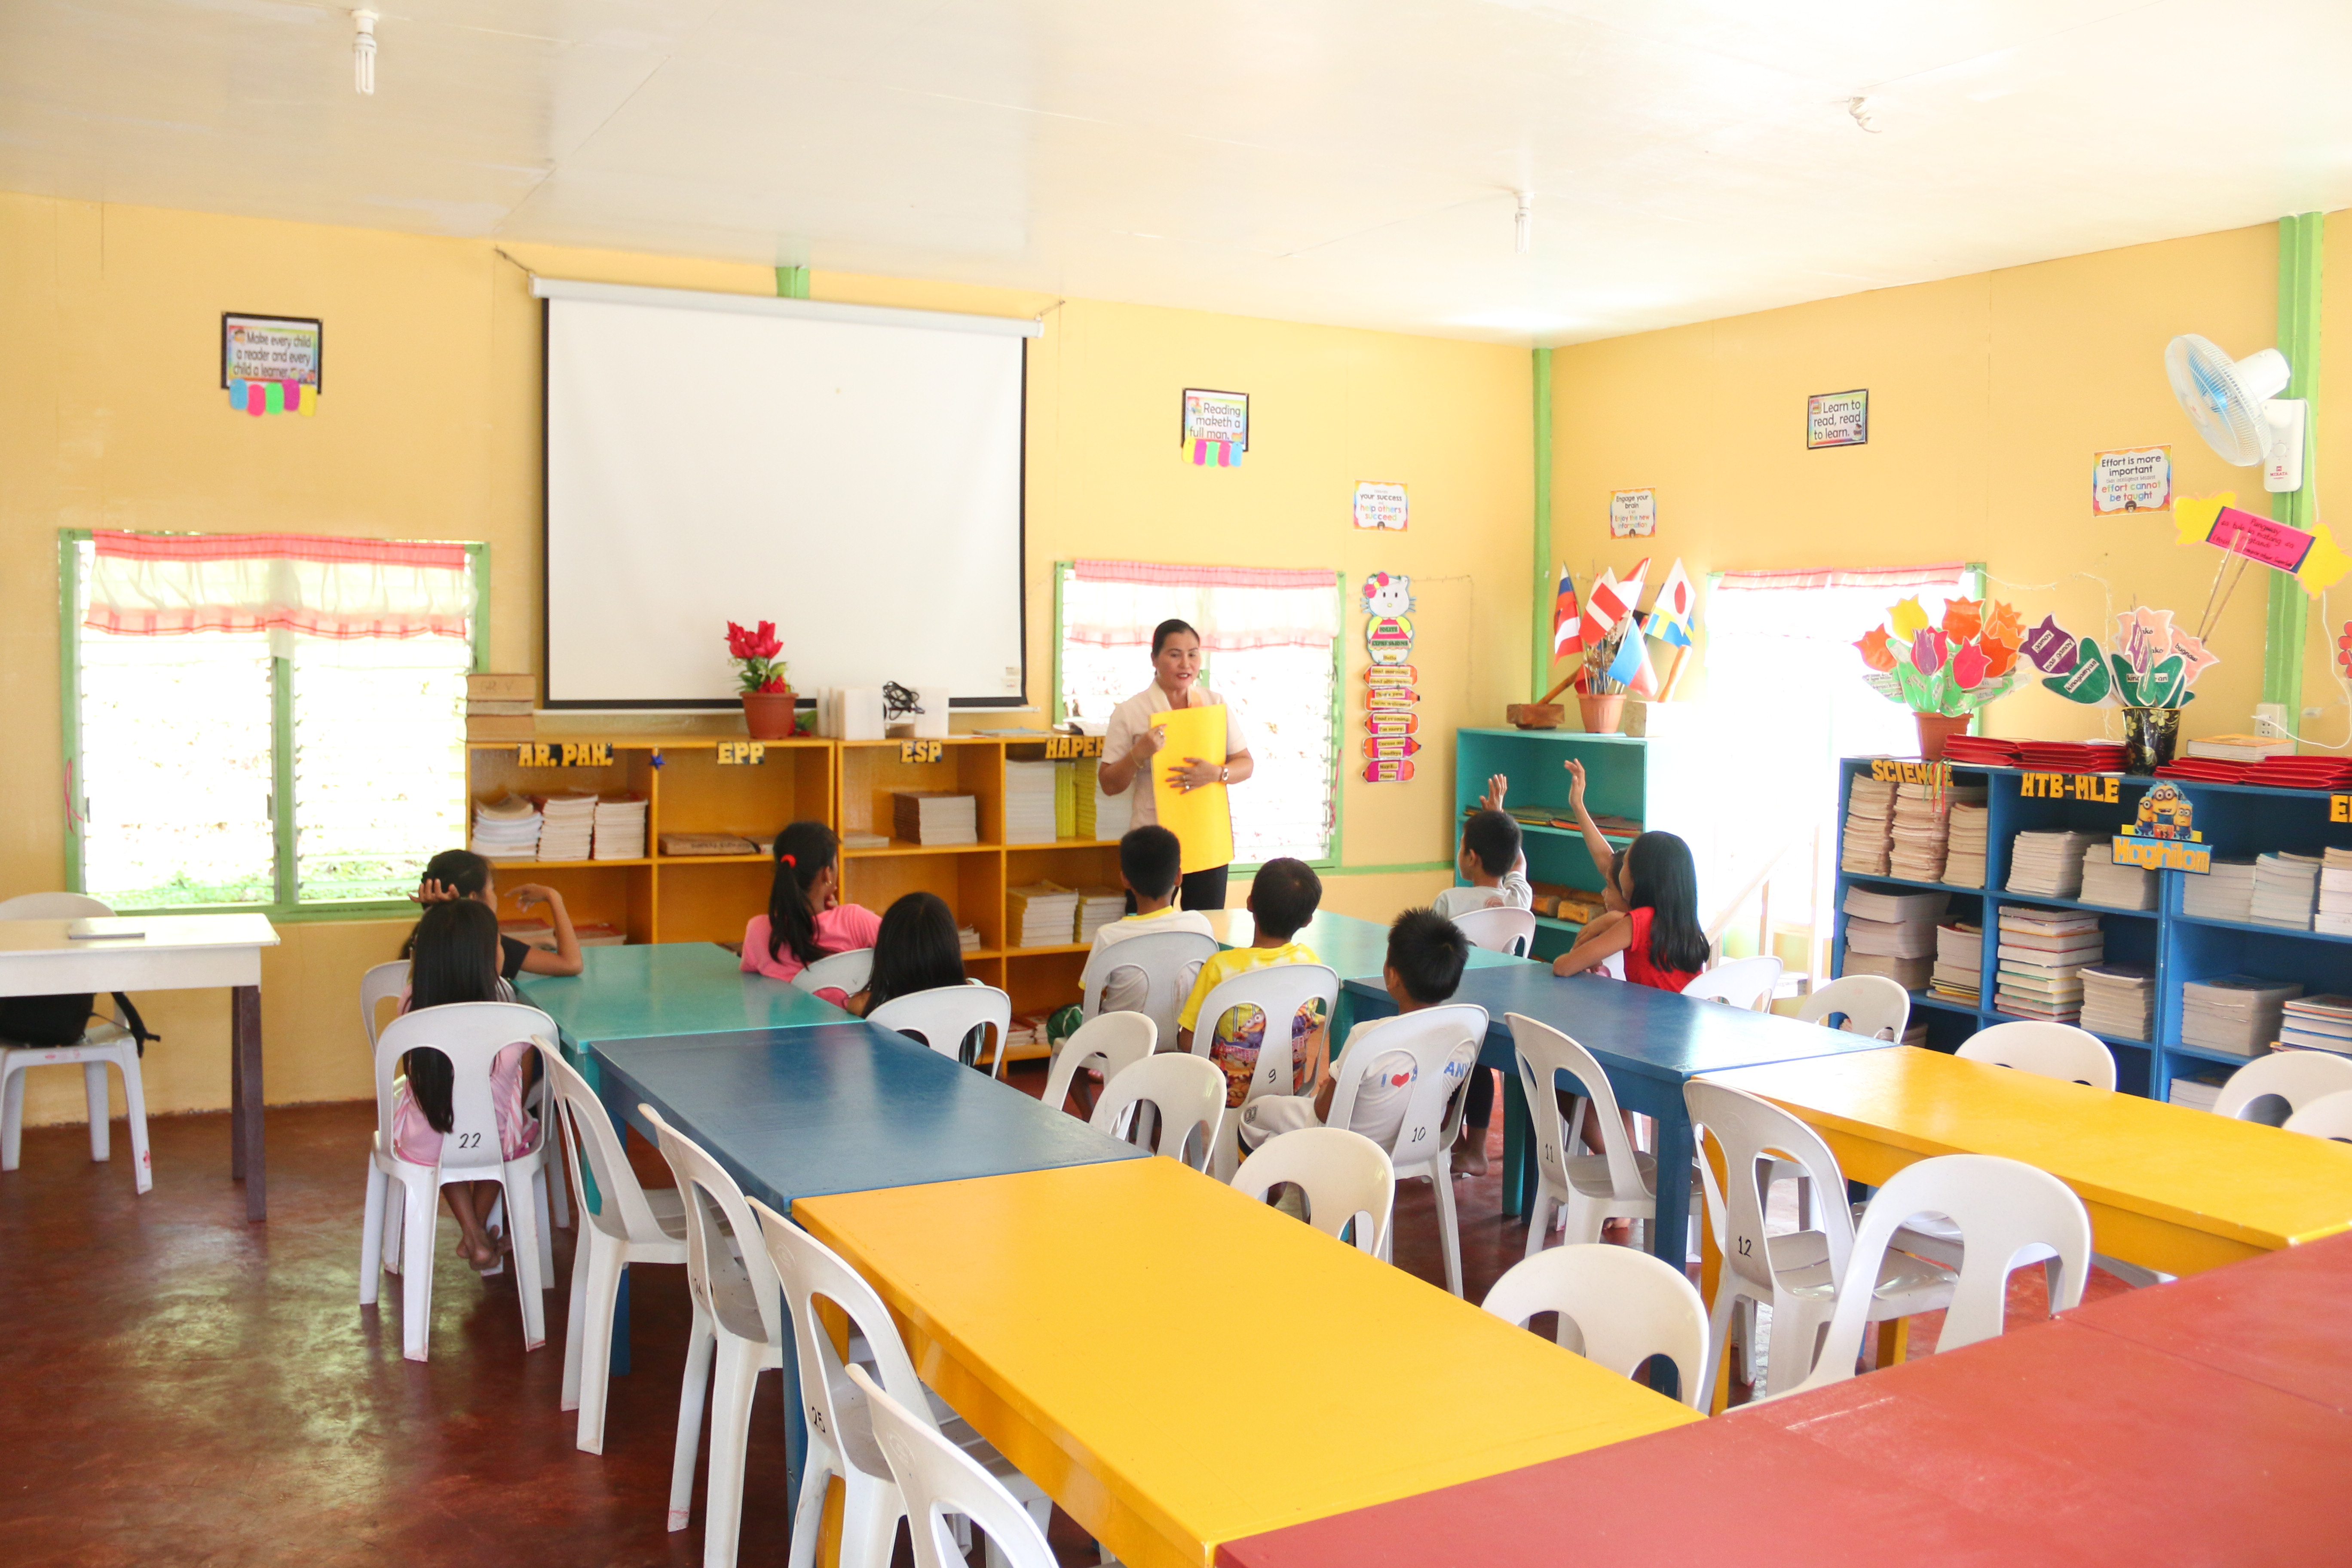 World Vision works in Zamboanga del Norte for more than 5 years already. Building classrooms, reading hubs and donating learning materials, are part of the organization's commitment to improve the reading and writing skills of students.